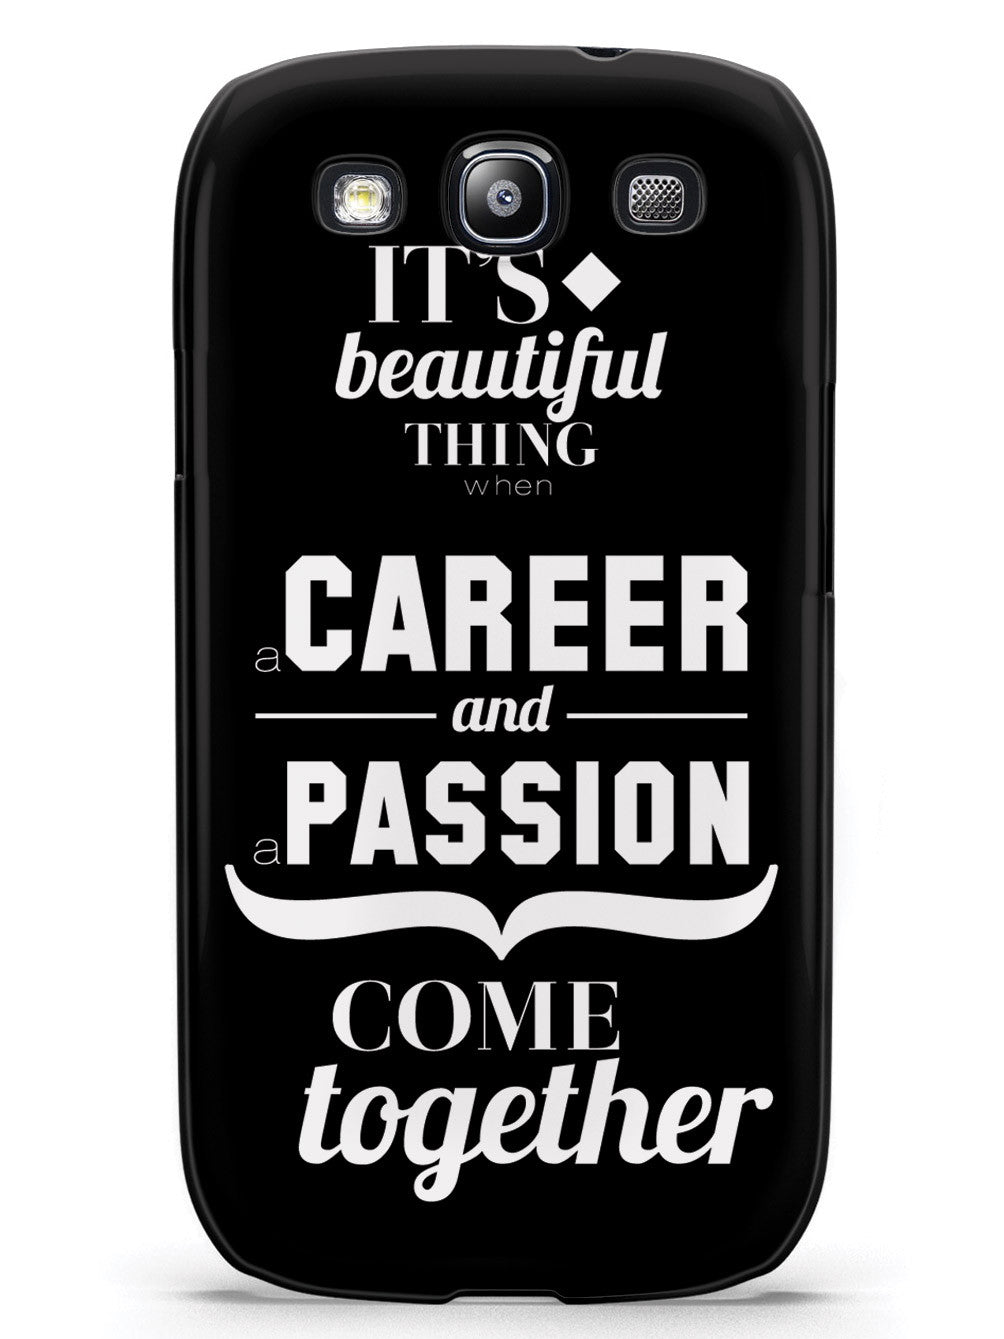 Career and Passion Come Together - Black Case